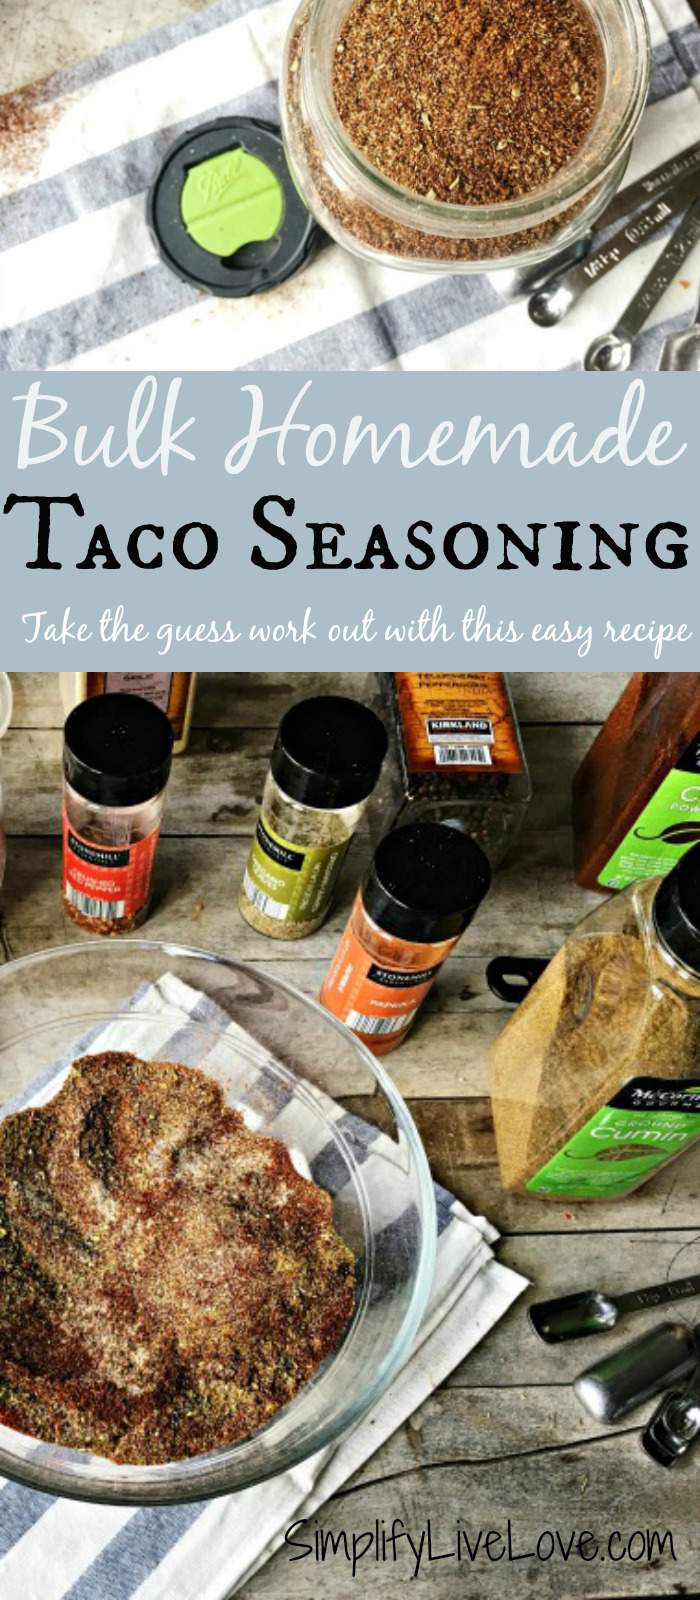 Bulk homemade taco seasoning. Take the guess work out of your math with this easy recipe that makes enough for 16 pounds of meat in one easy recipe. Save time by making your homemade seasoning mix in bulk and store the rest in an airtight jar in your pantry.